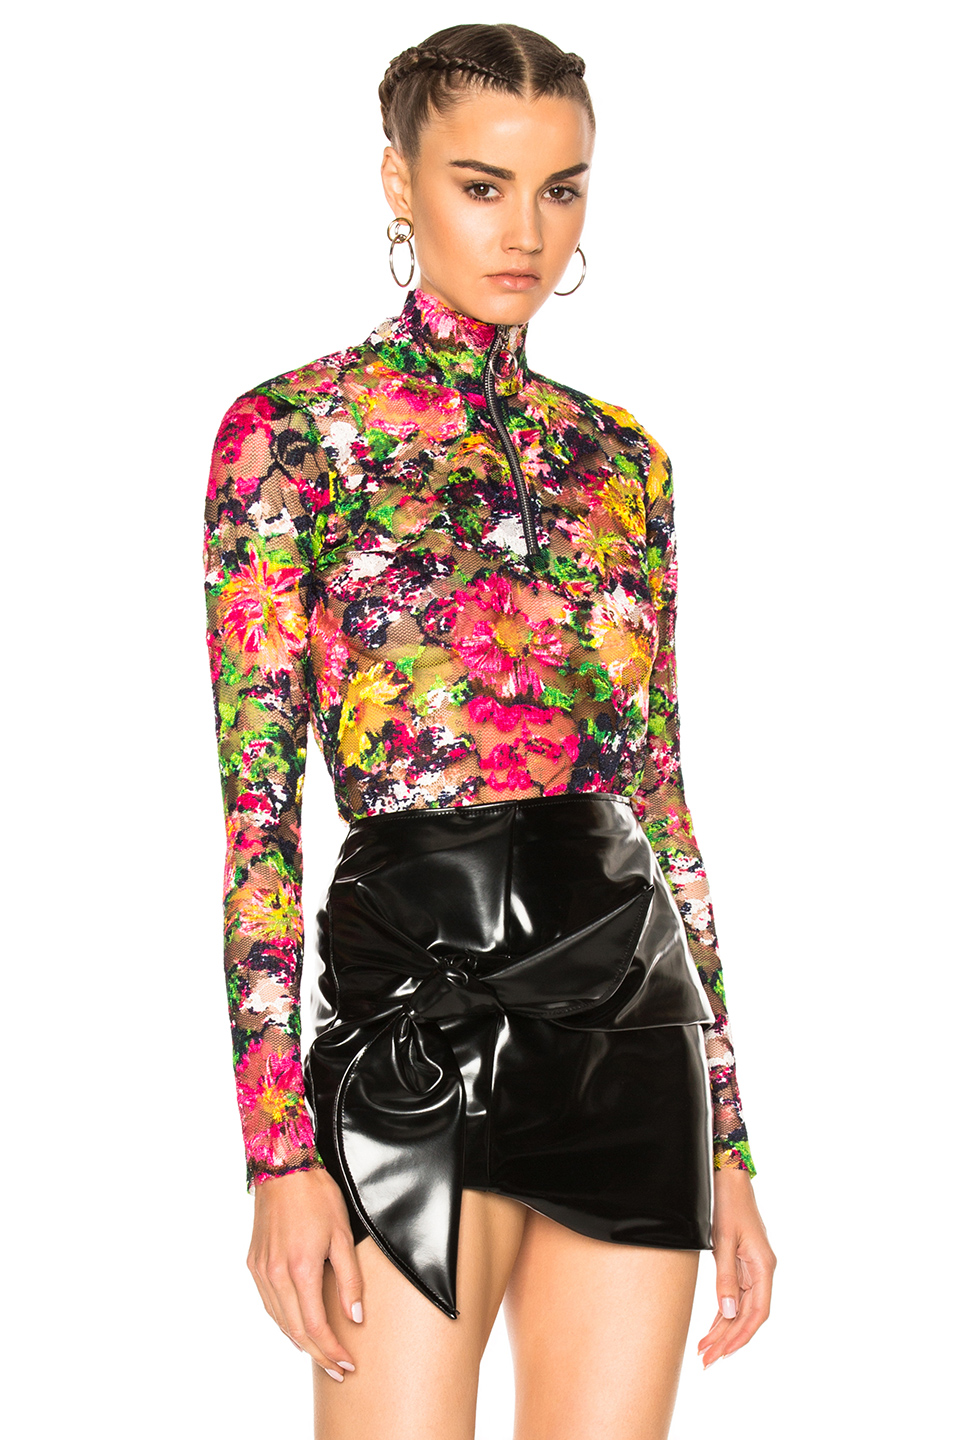 Marques ' Almeida Lace Zip Neck Top in Floral,Green,Pink